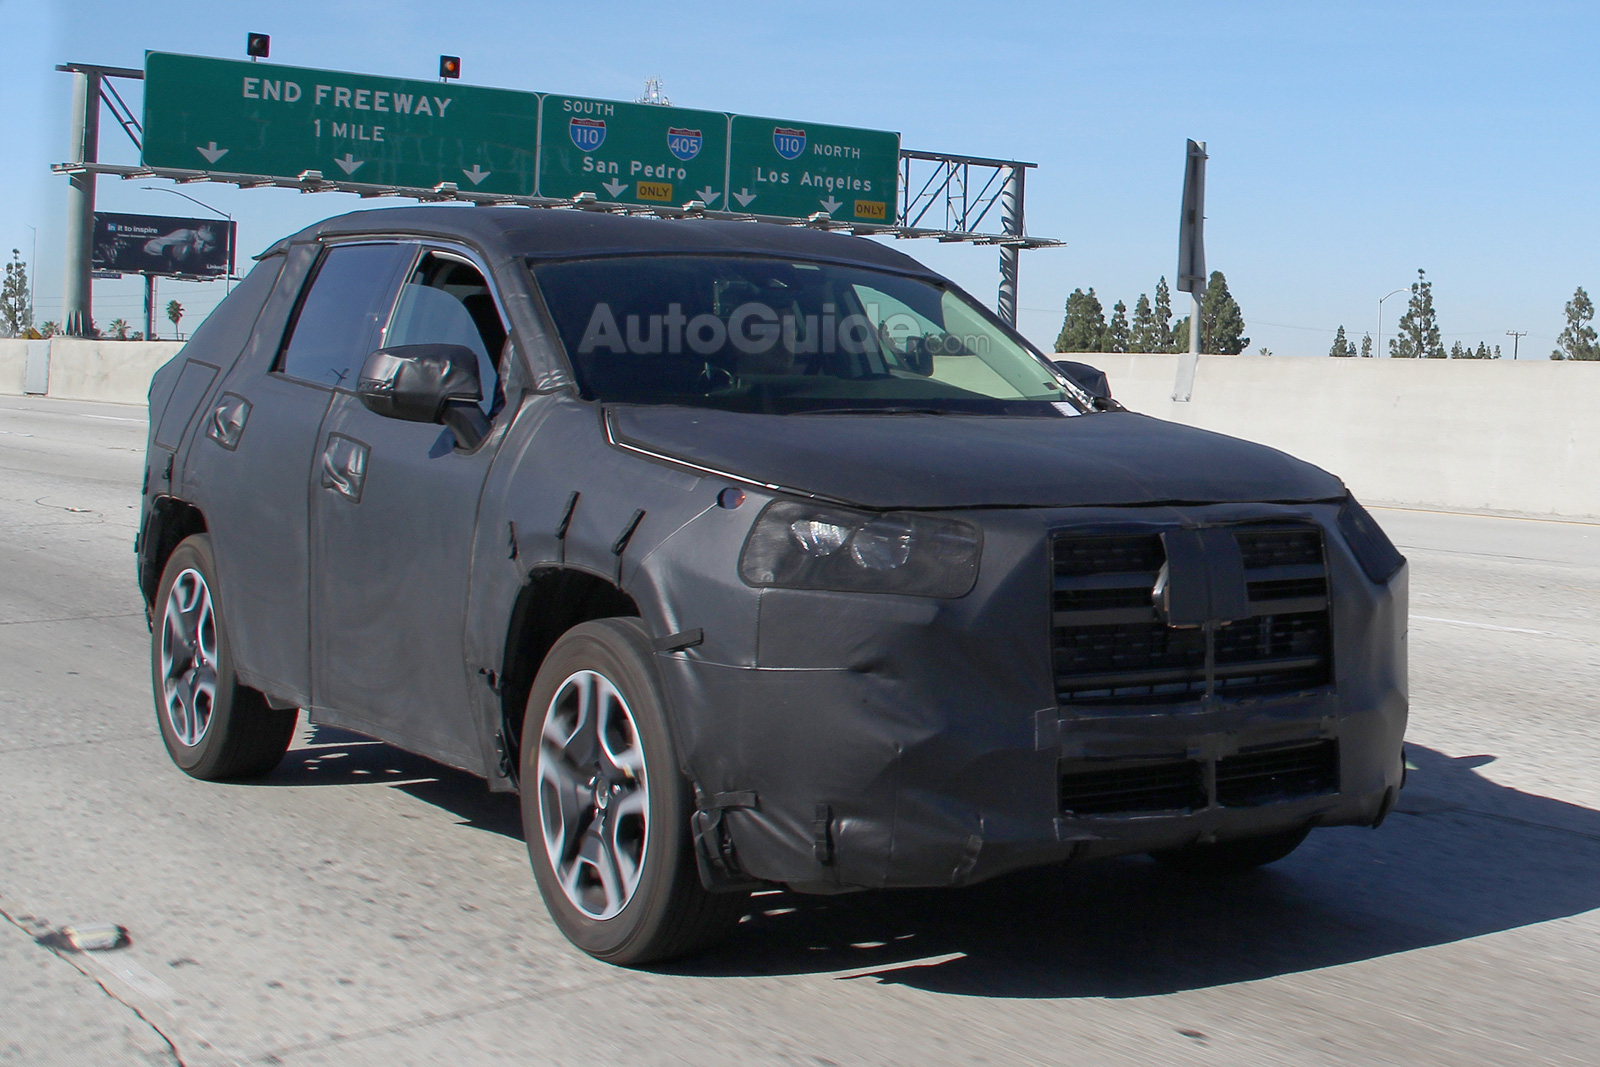 2019 Toyota Rav4 Breaks Cover Testing In Southern California